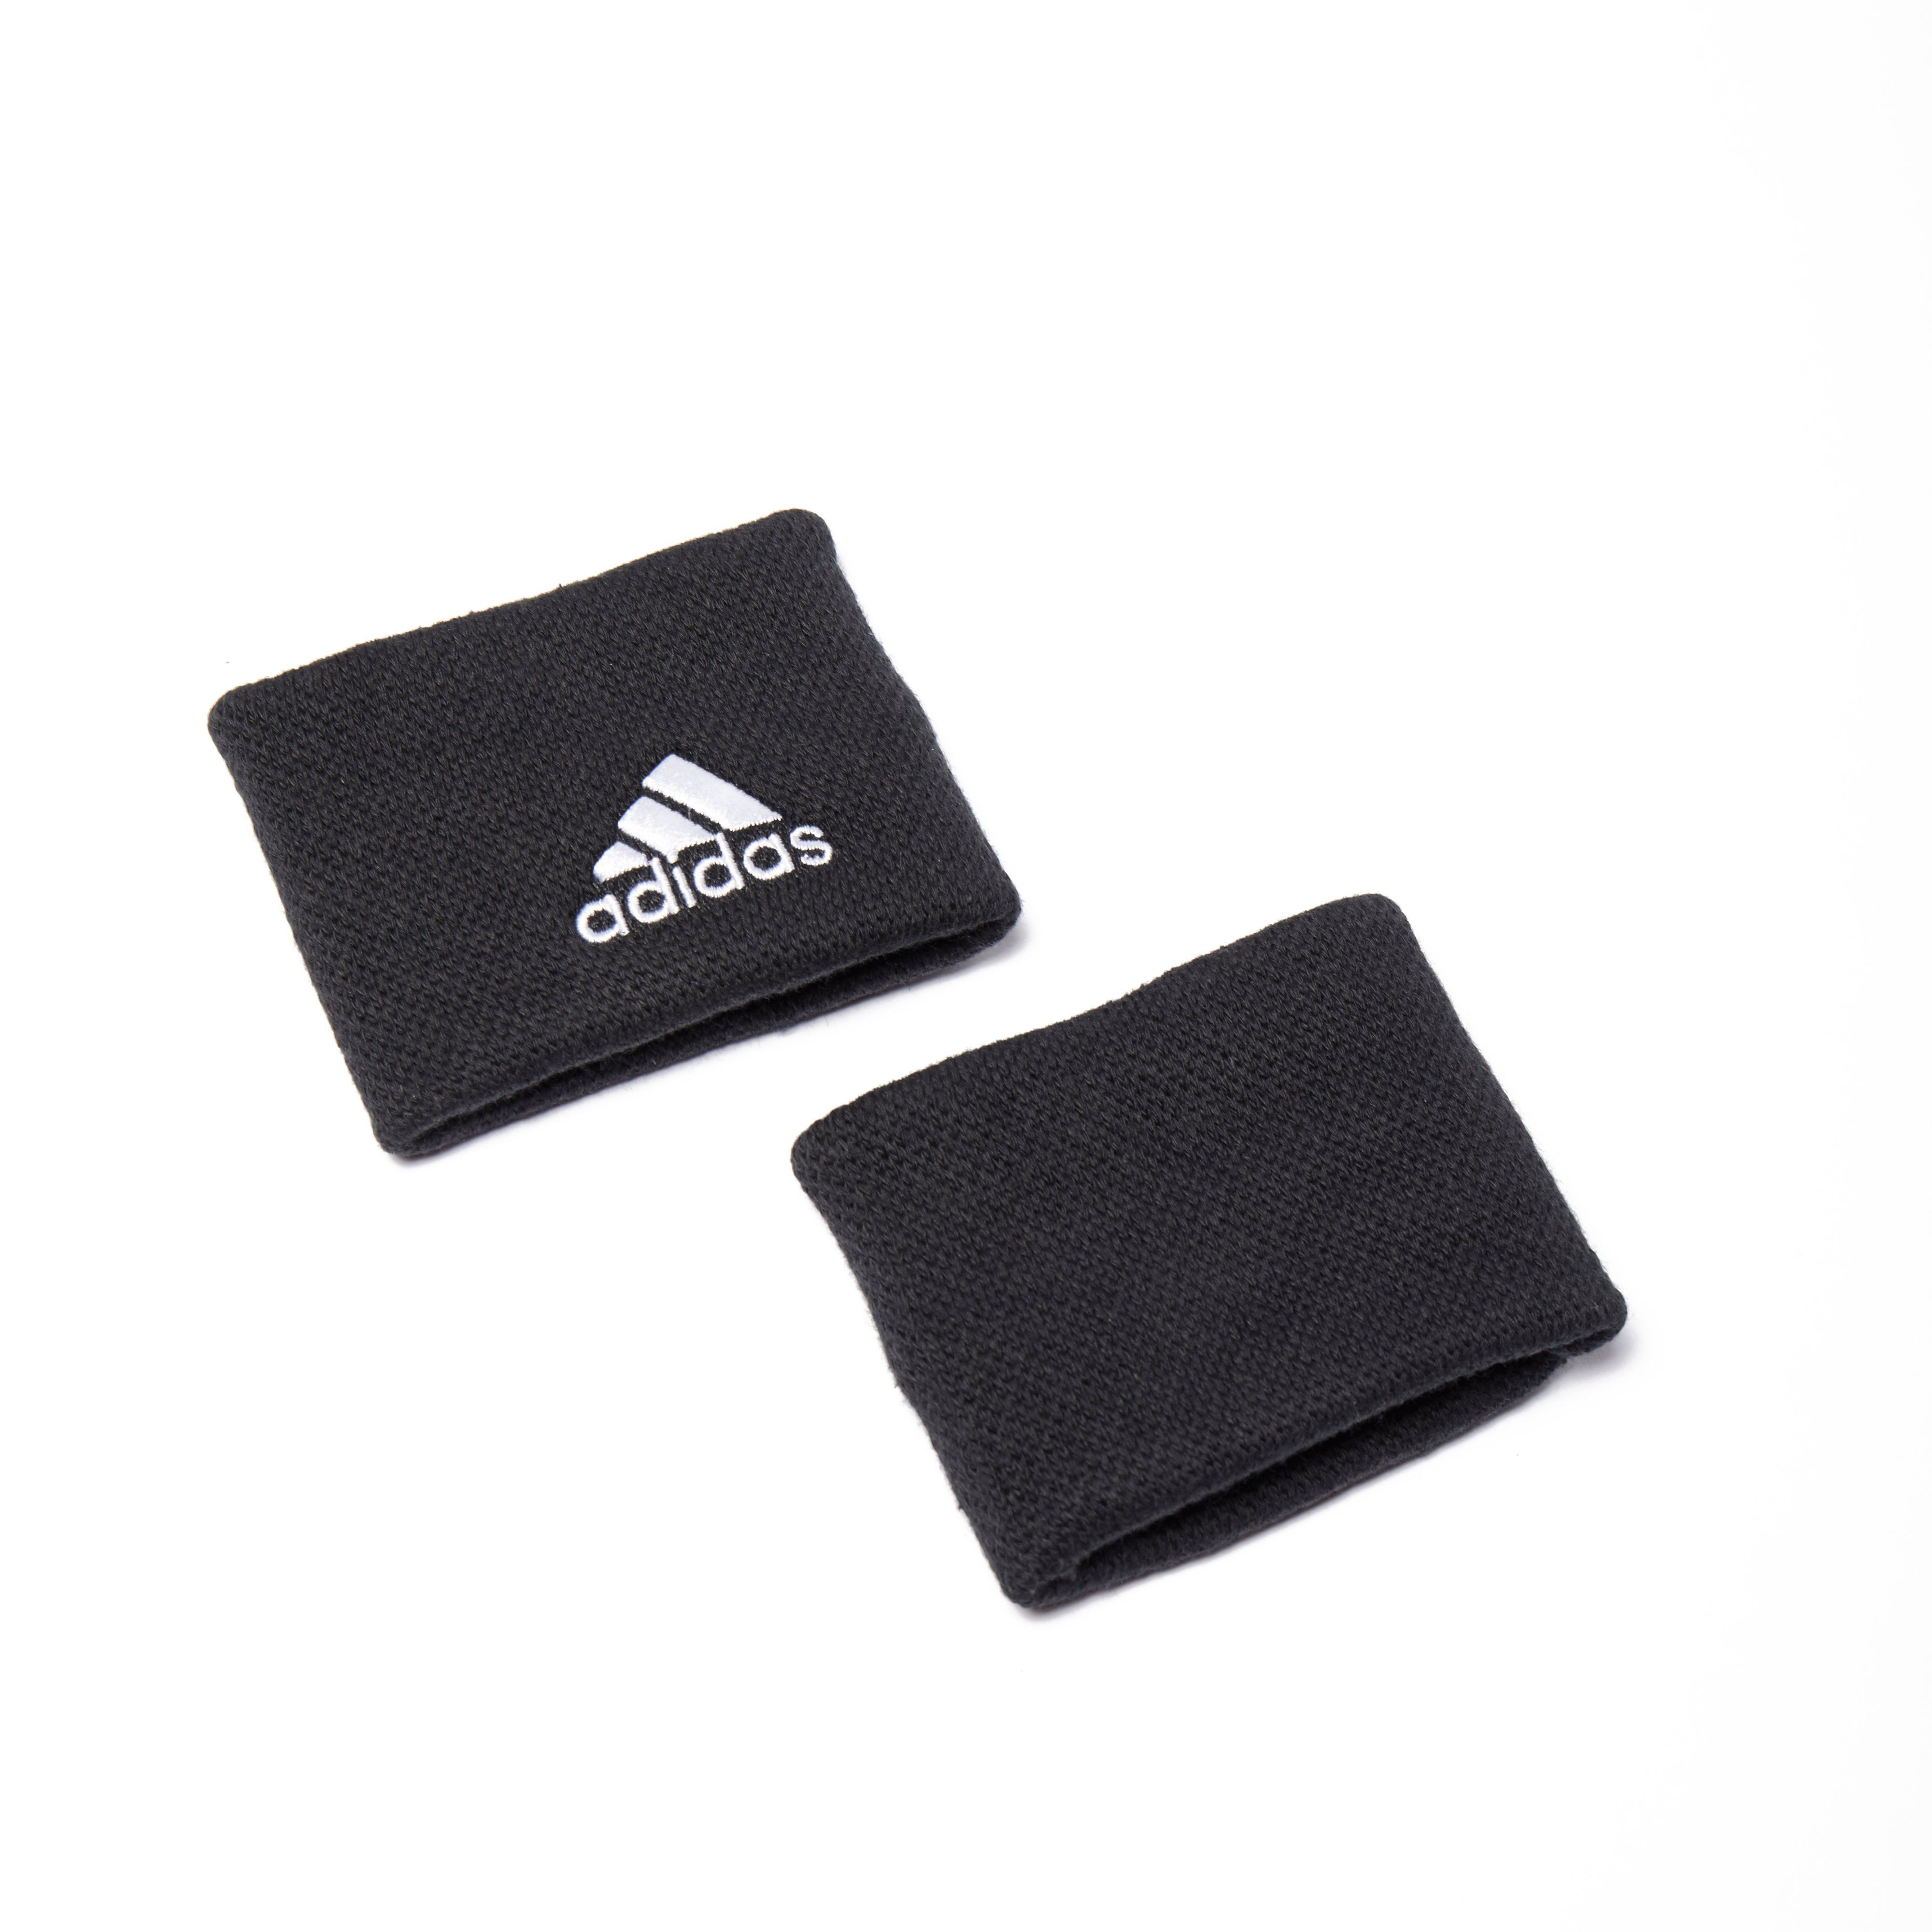 adidas Small Tennis Wristbands (2 Pack)